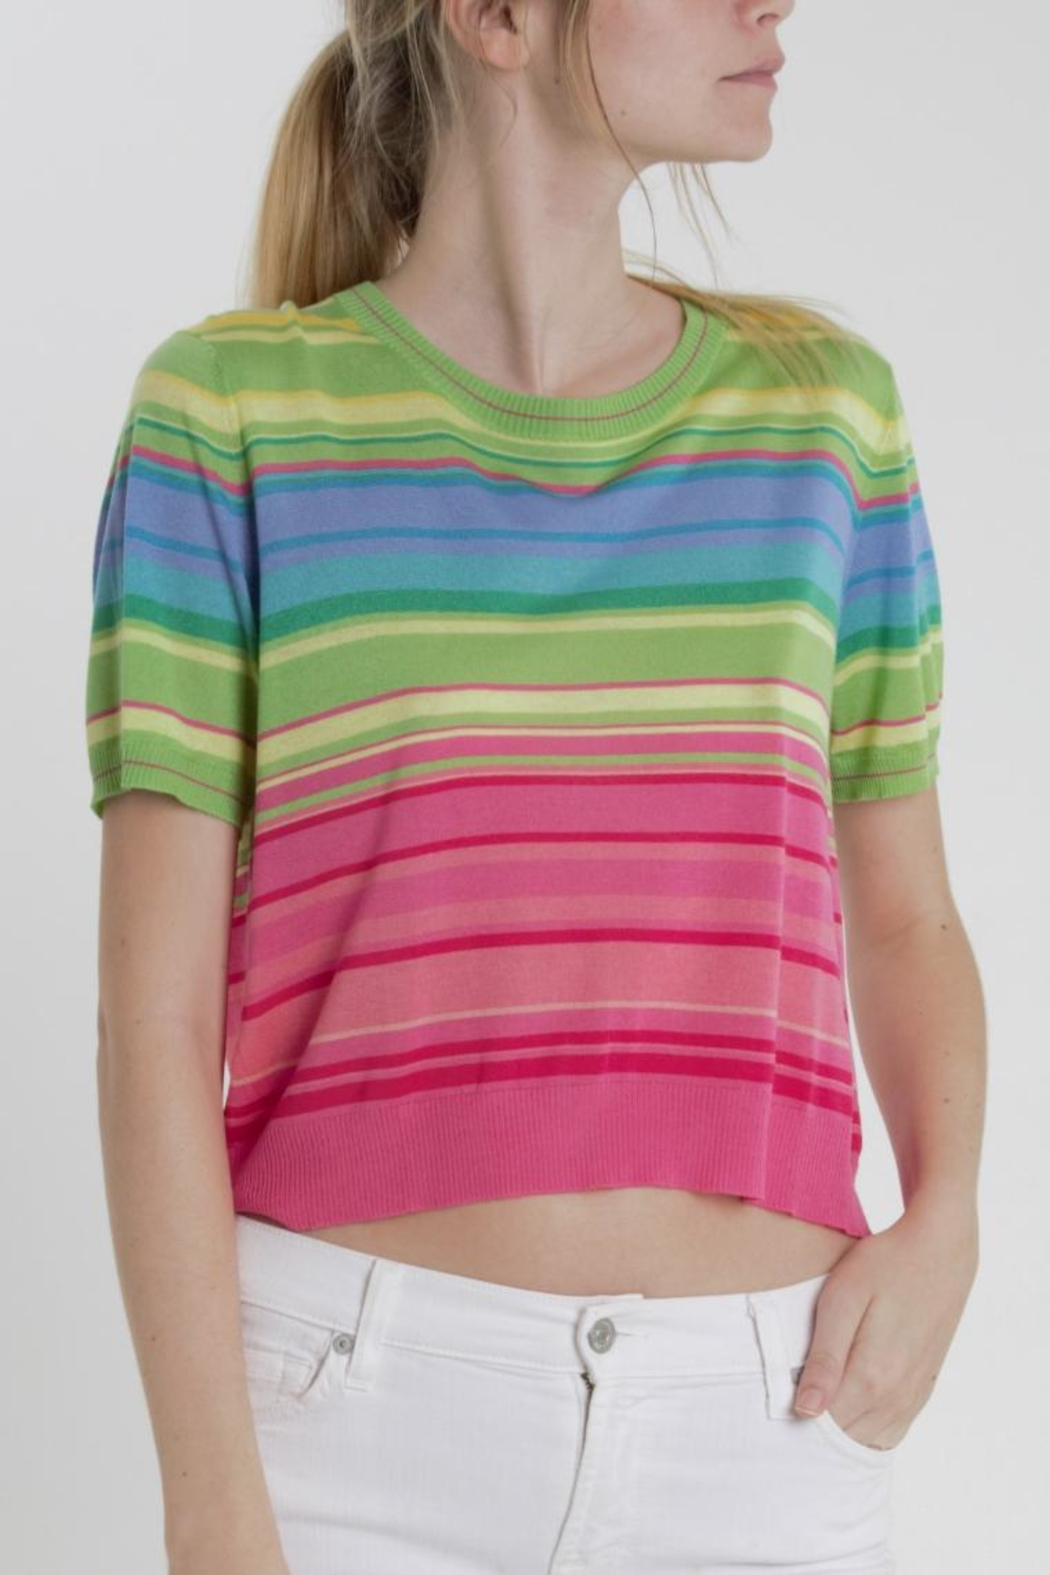 Thread+Onion Striped Crop Top - Main Image